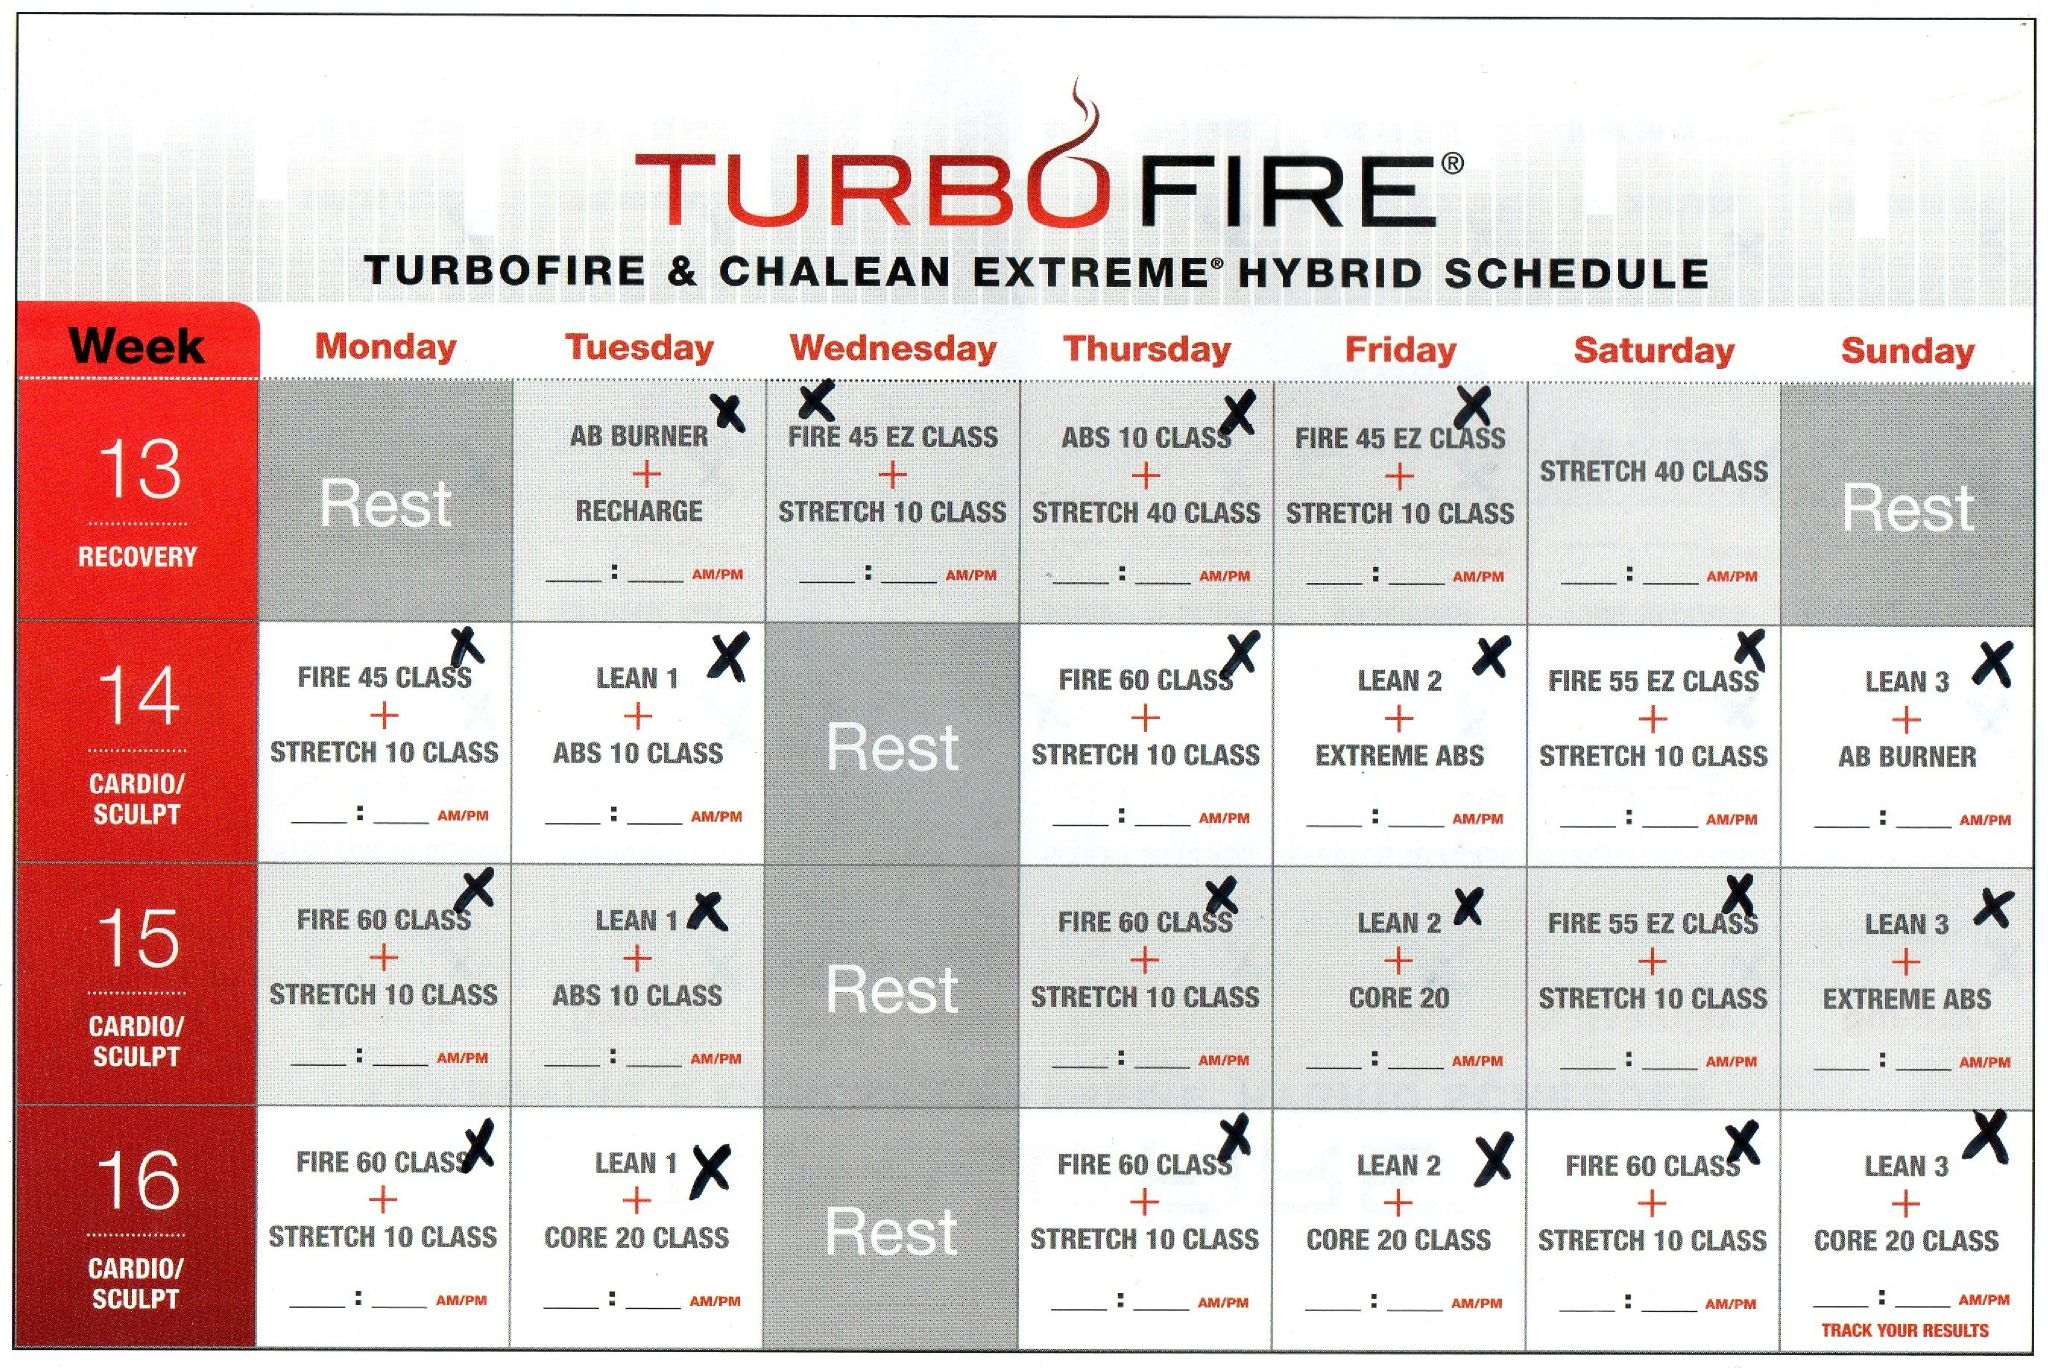 turbo fire week 13 calendar | turbo fire and chalean extreme hybrid